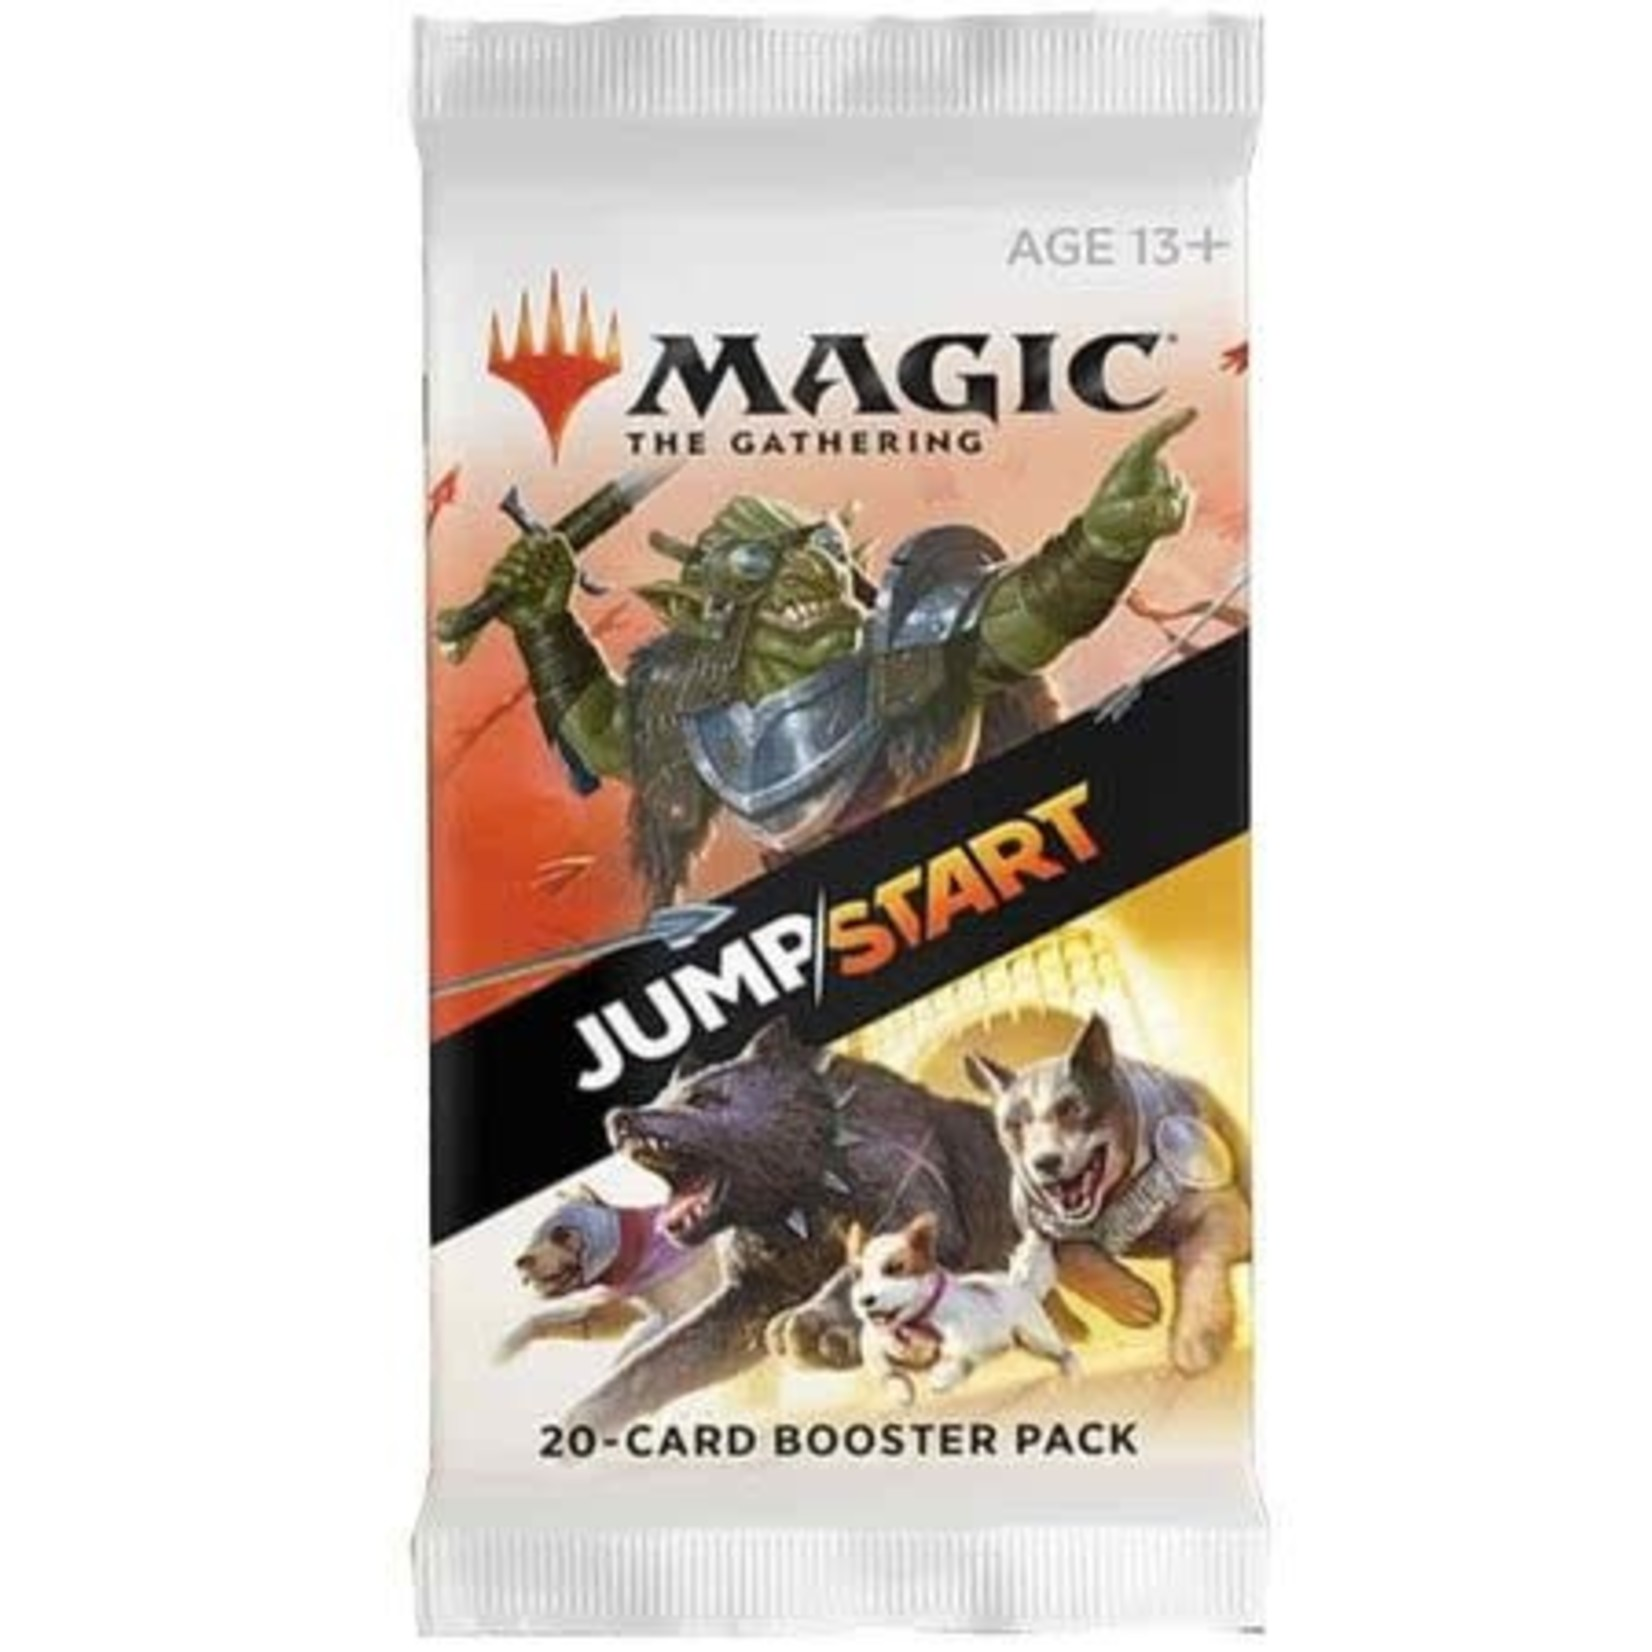 Magic The Gathering Magic The Gathering Jumpstart Booster pack